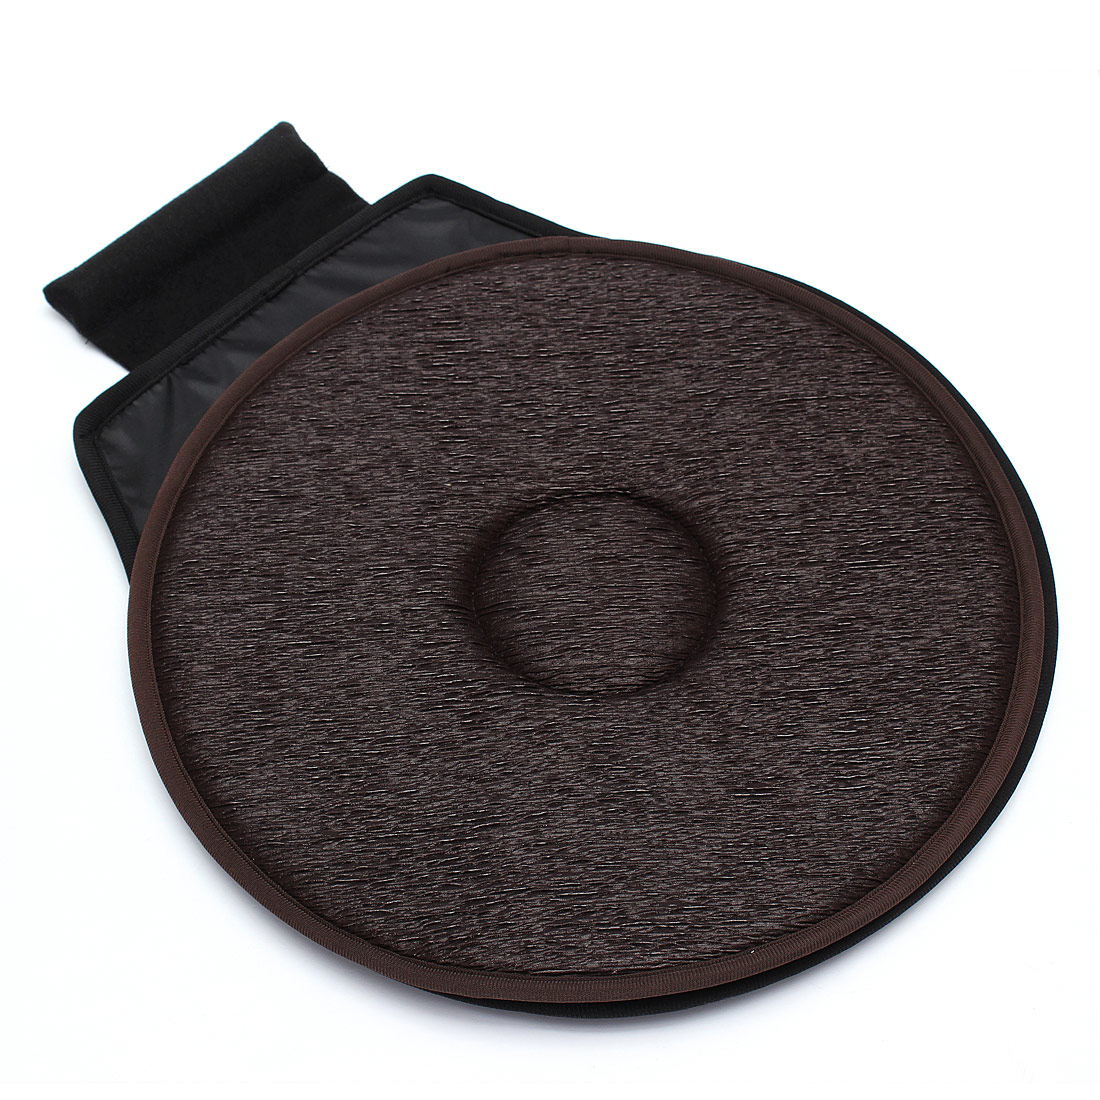 Car Seat Revolving Rotating Cushion Swivel Foam Mobility Aid Chair Seat Cushion Coffee